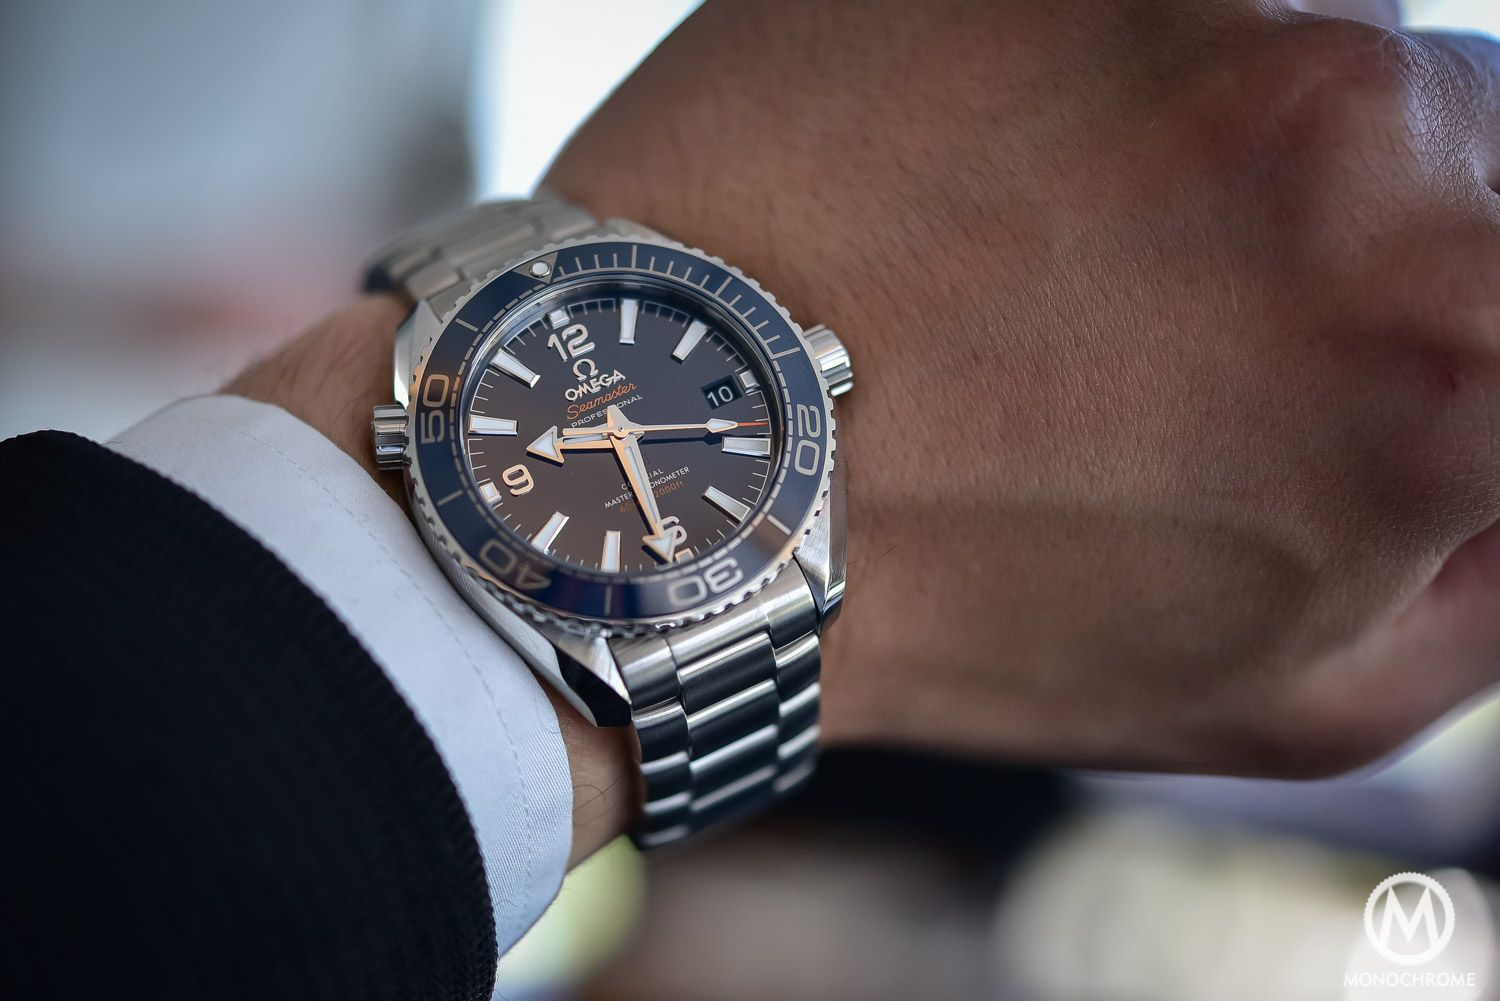 ccf134a83ba Smaller is Better  Case study with the 39.5mm Omega Seamaster Planet ...